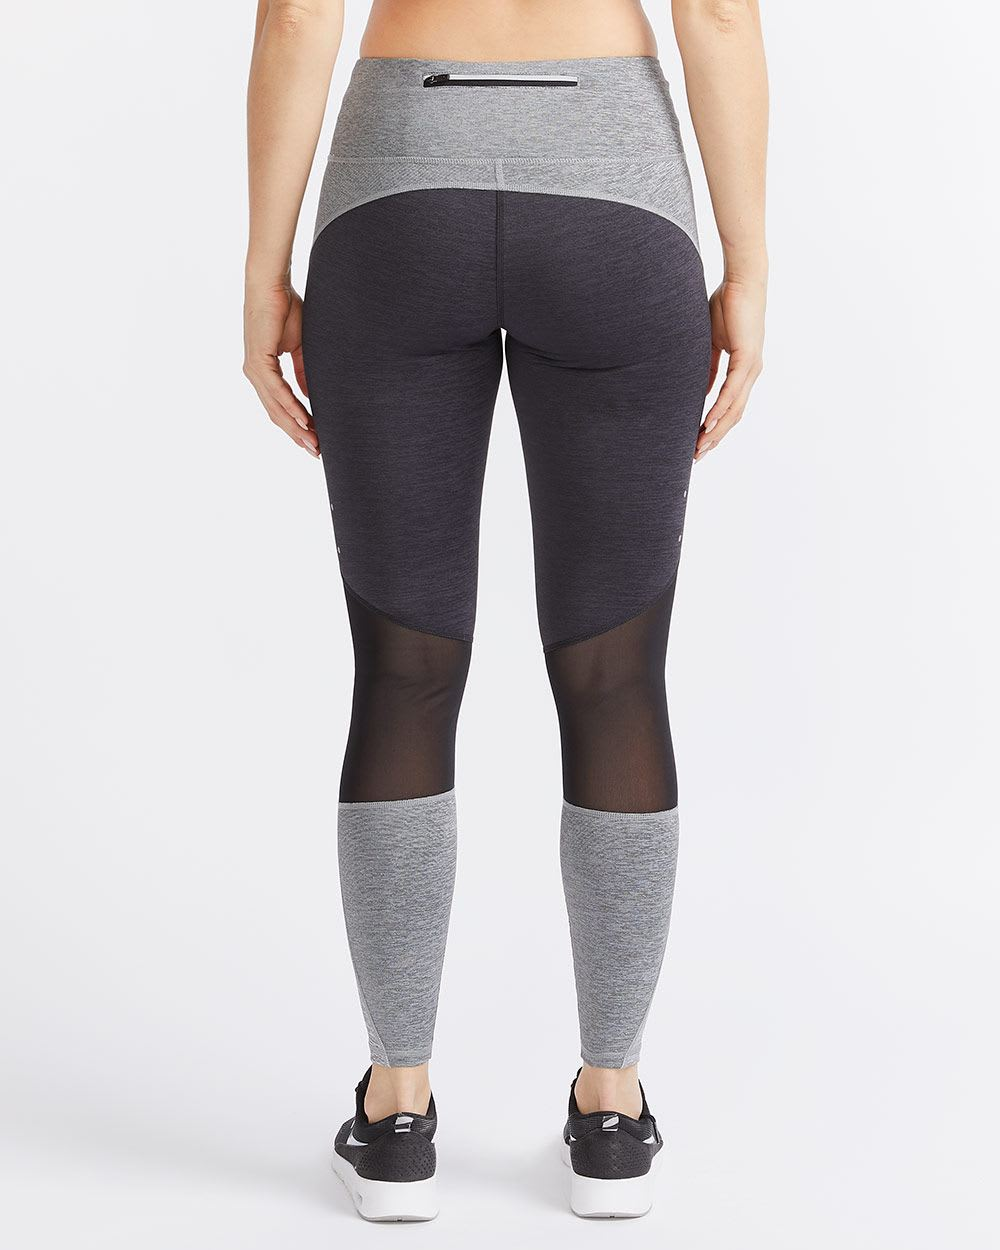 Hyba Colourblock Running Legging